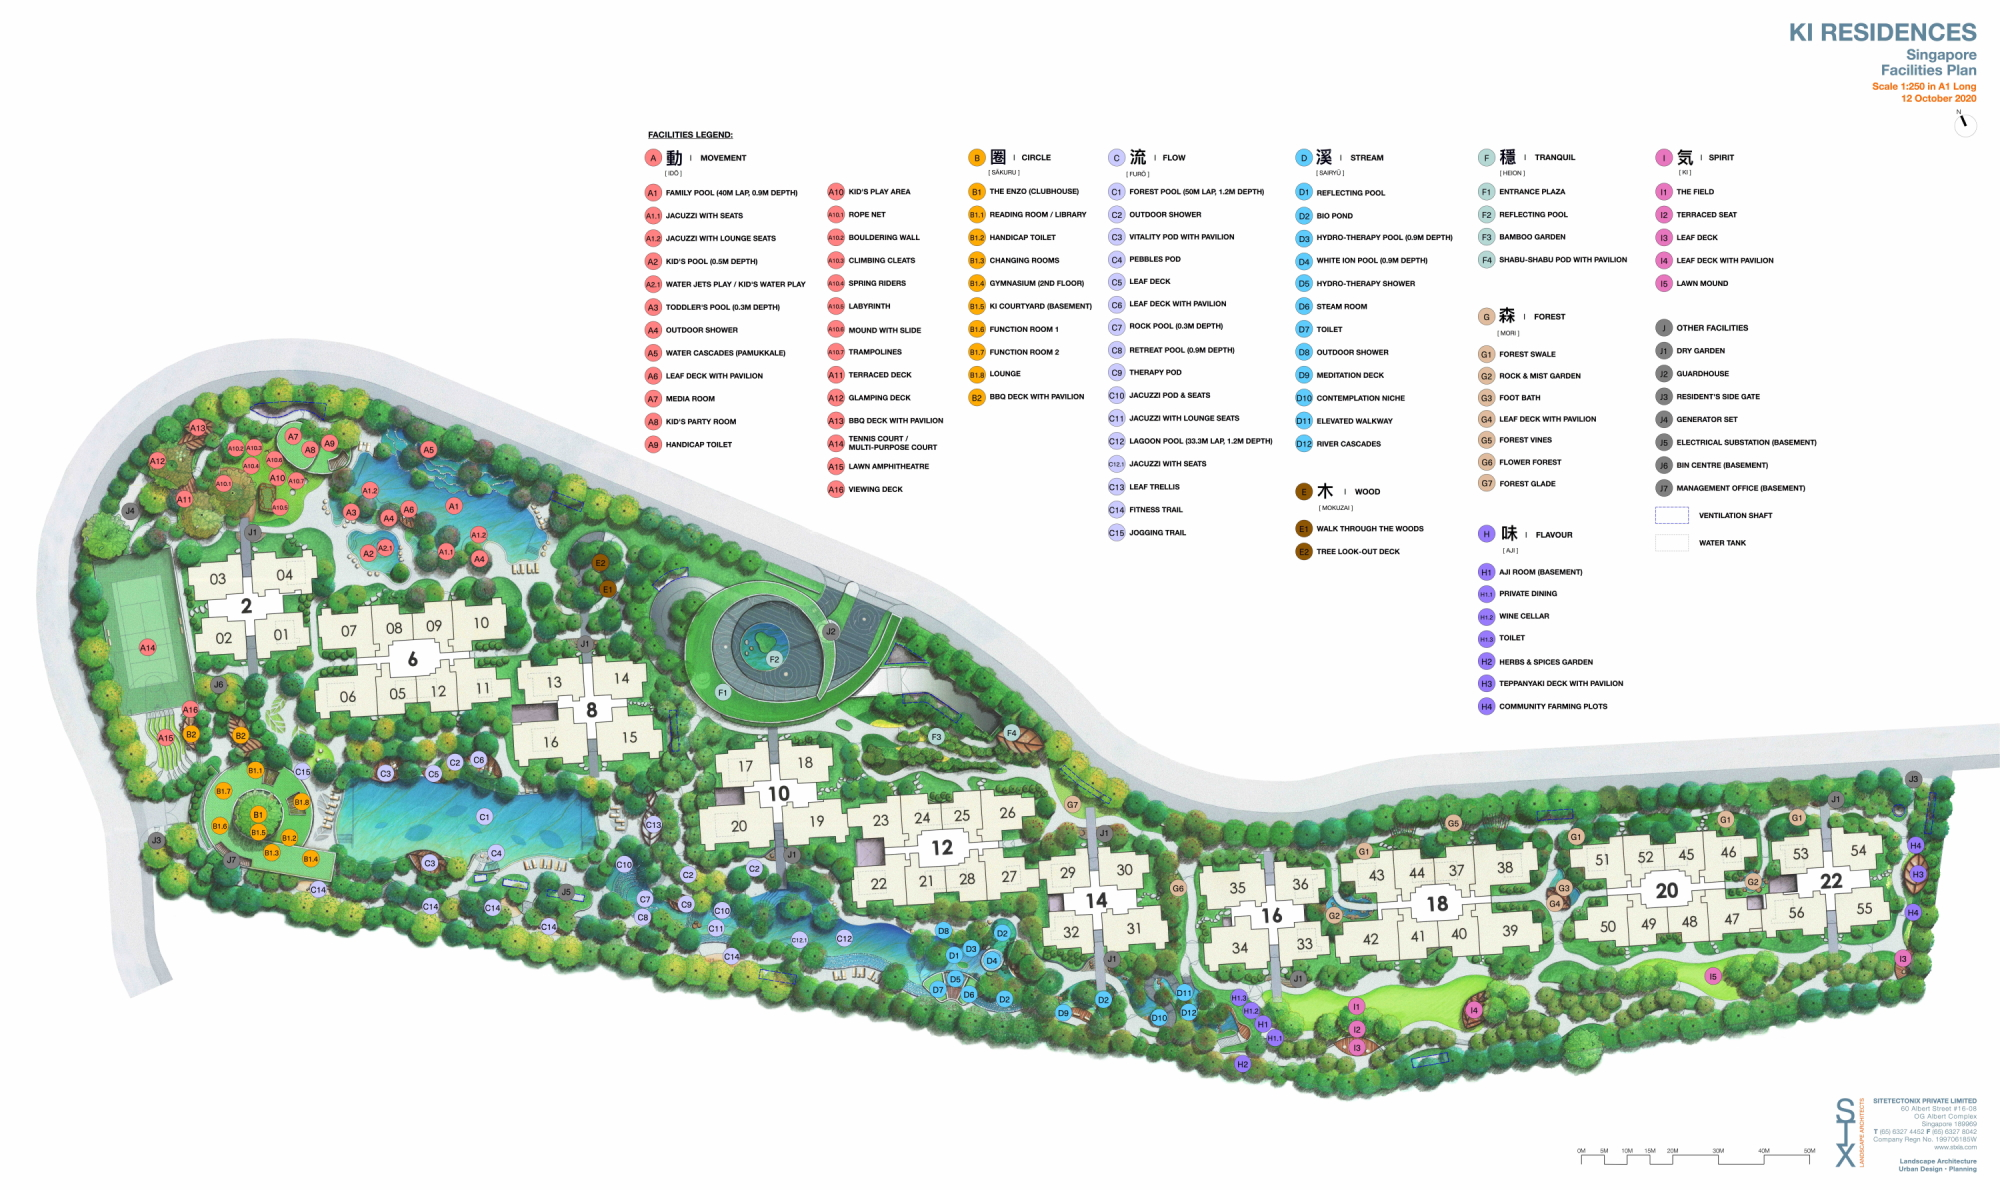 Ki Residences at Brookvale site plan